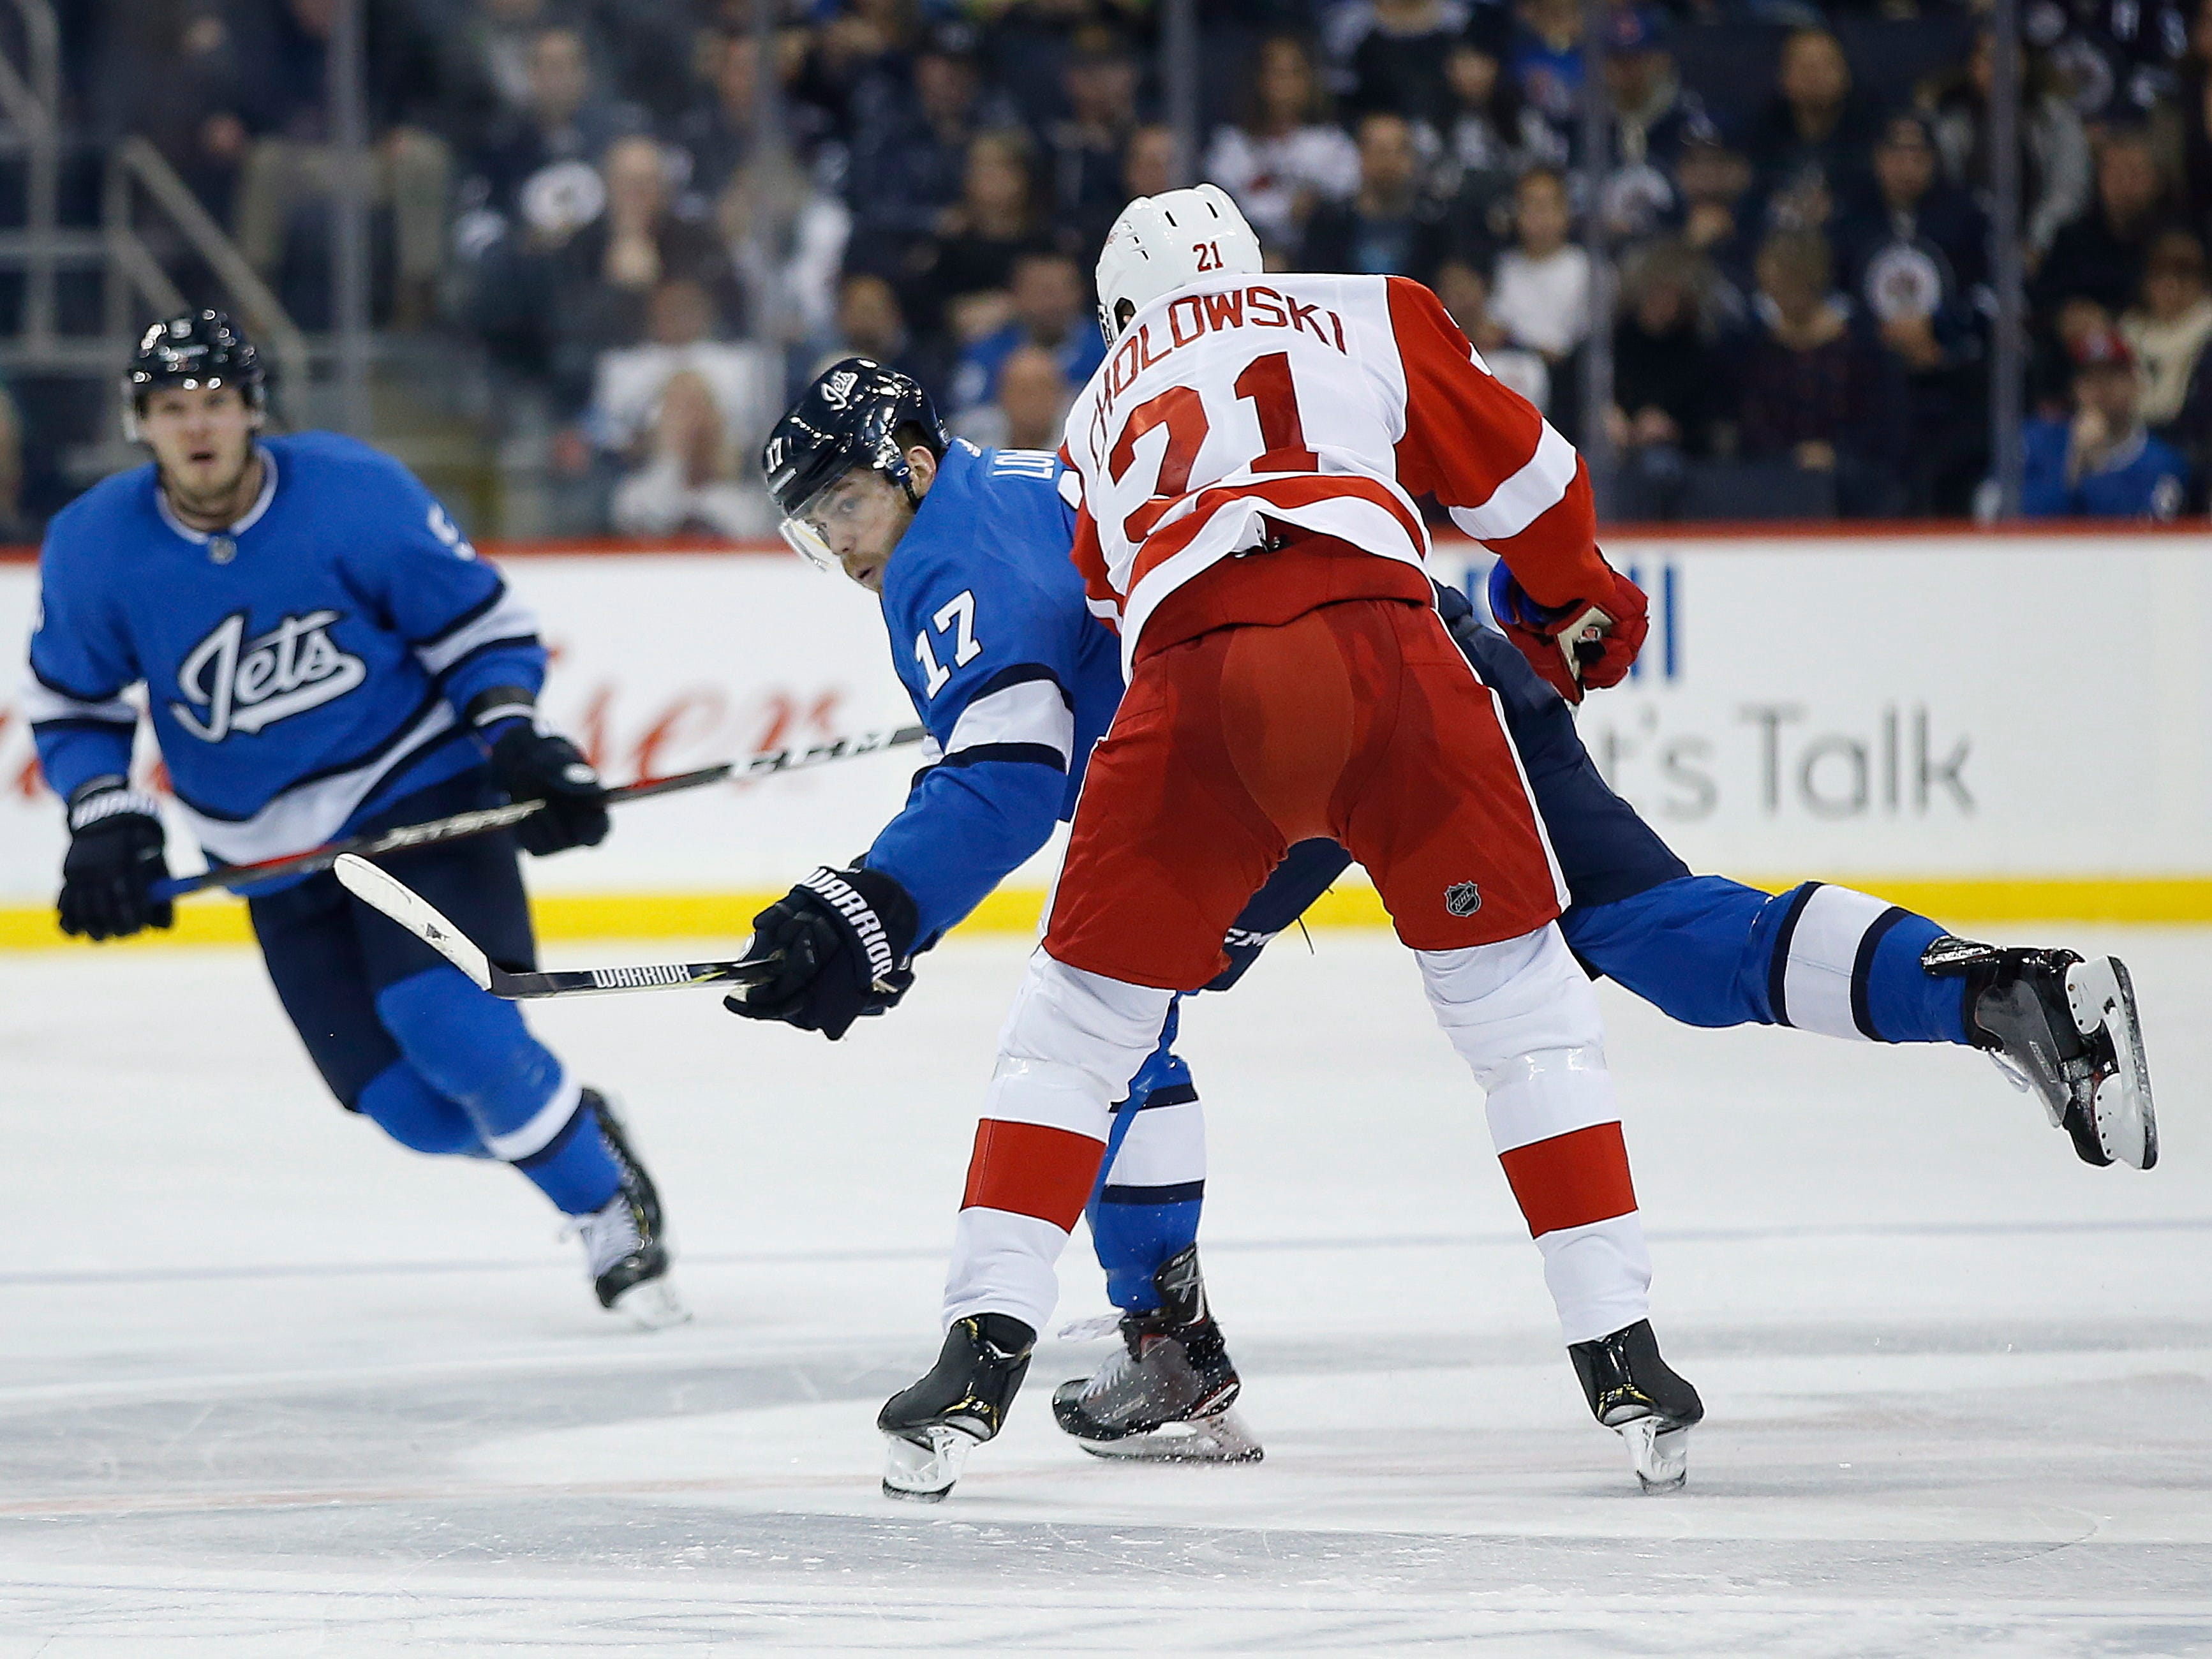 Winnipeg Jets' Adam Lowry (17) dumps the puck in as Detroit Red Wings' Dennis Cholowski defends during the second period Friday, Jan. 11, 2019, in Winnipeg, Manitoba.